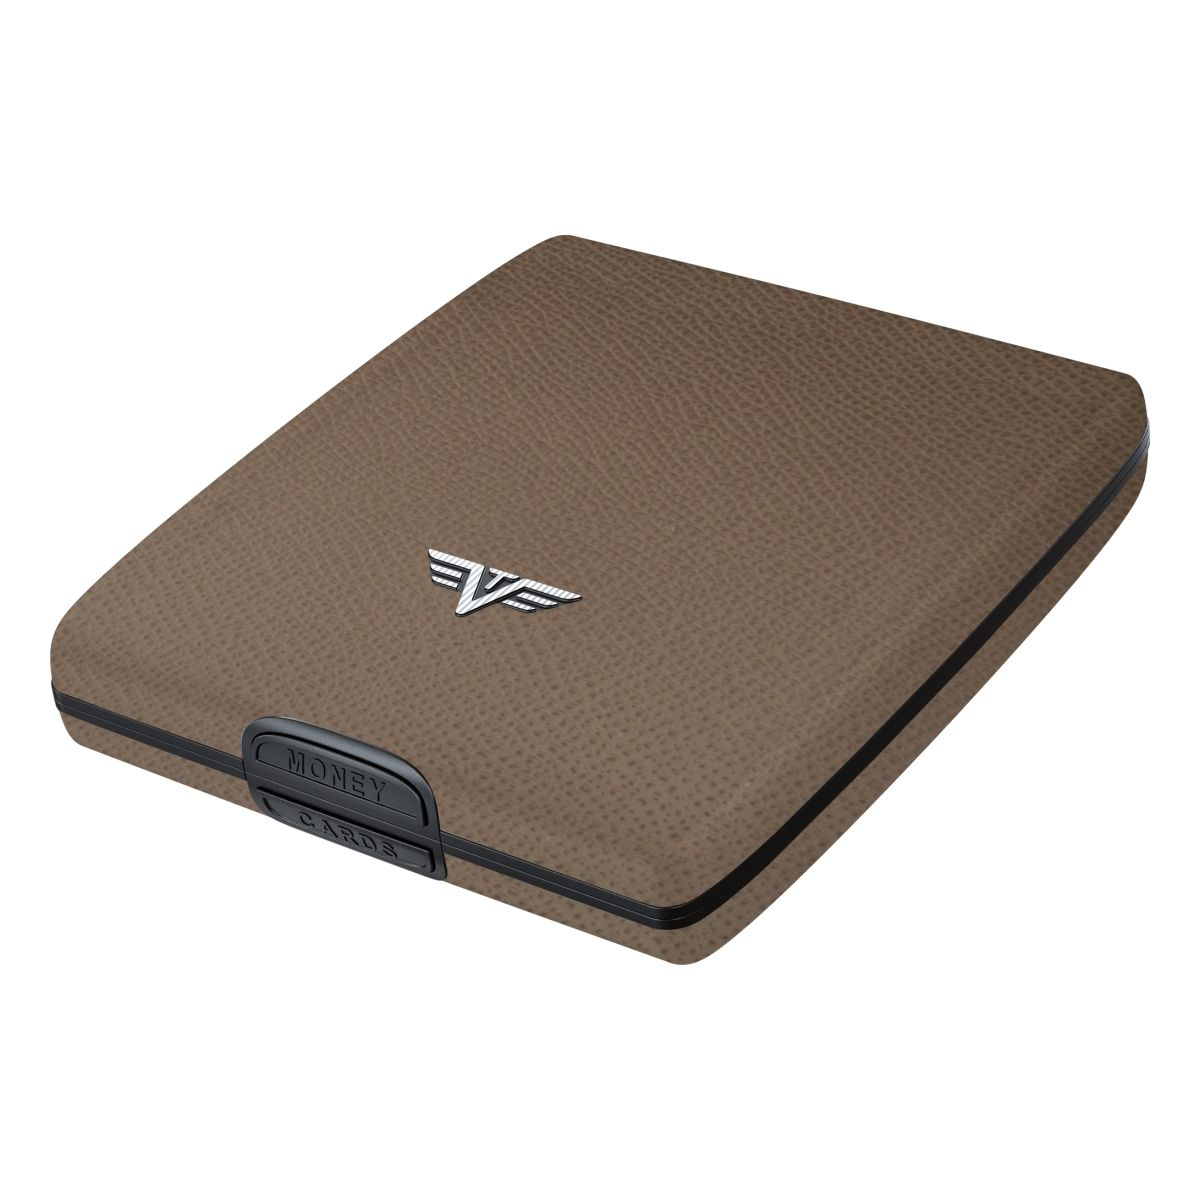 TRU VIRTU Aluminum Wallet Beluga - Money & Cards - Leather Line - Nappa Brown